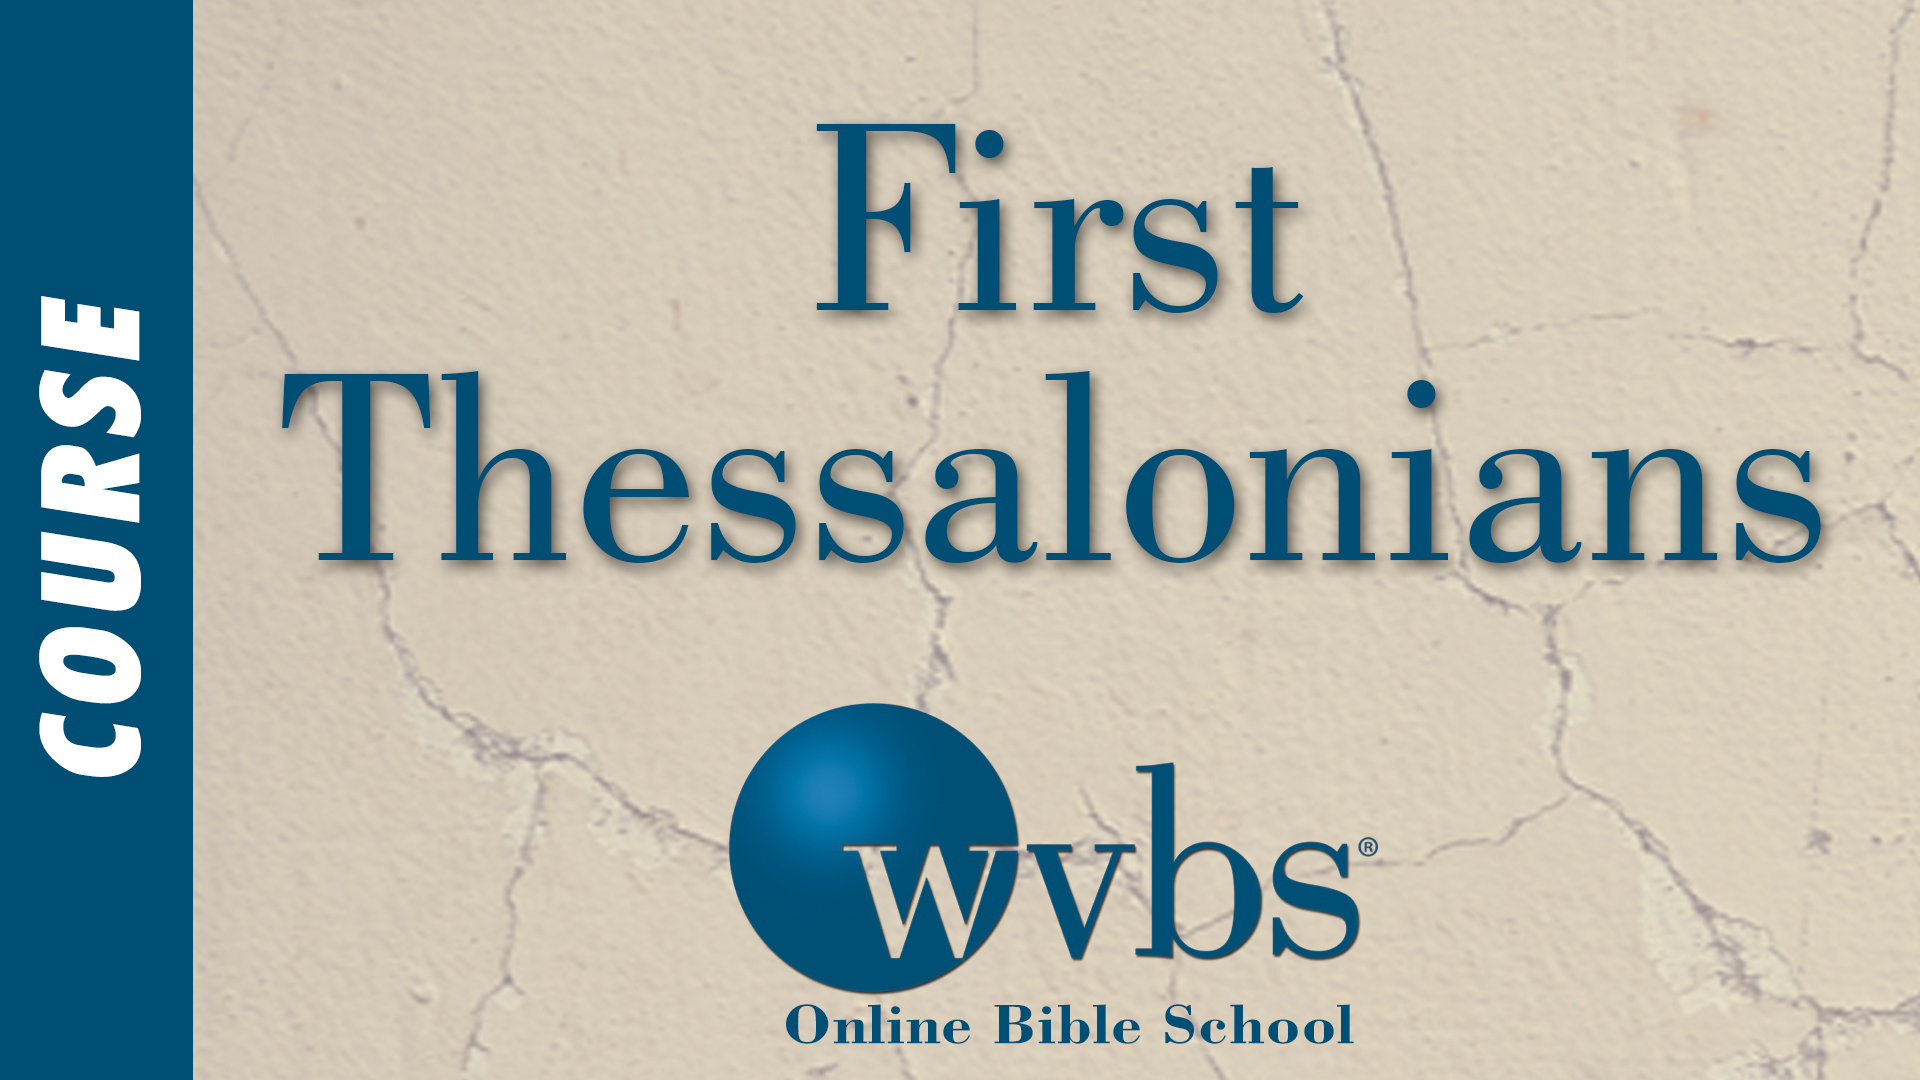 First Thessalonians (Online Bible School)